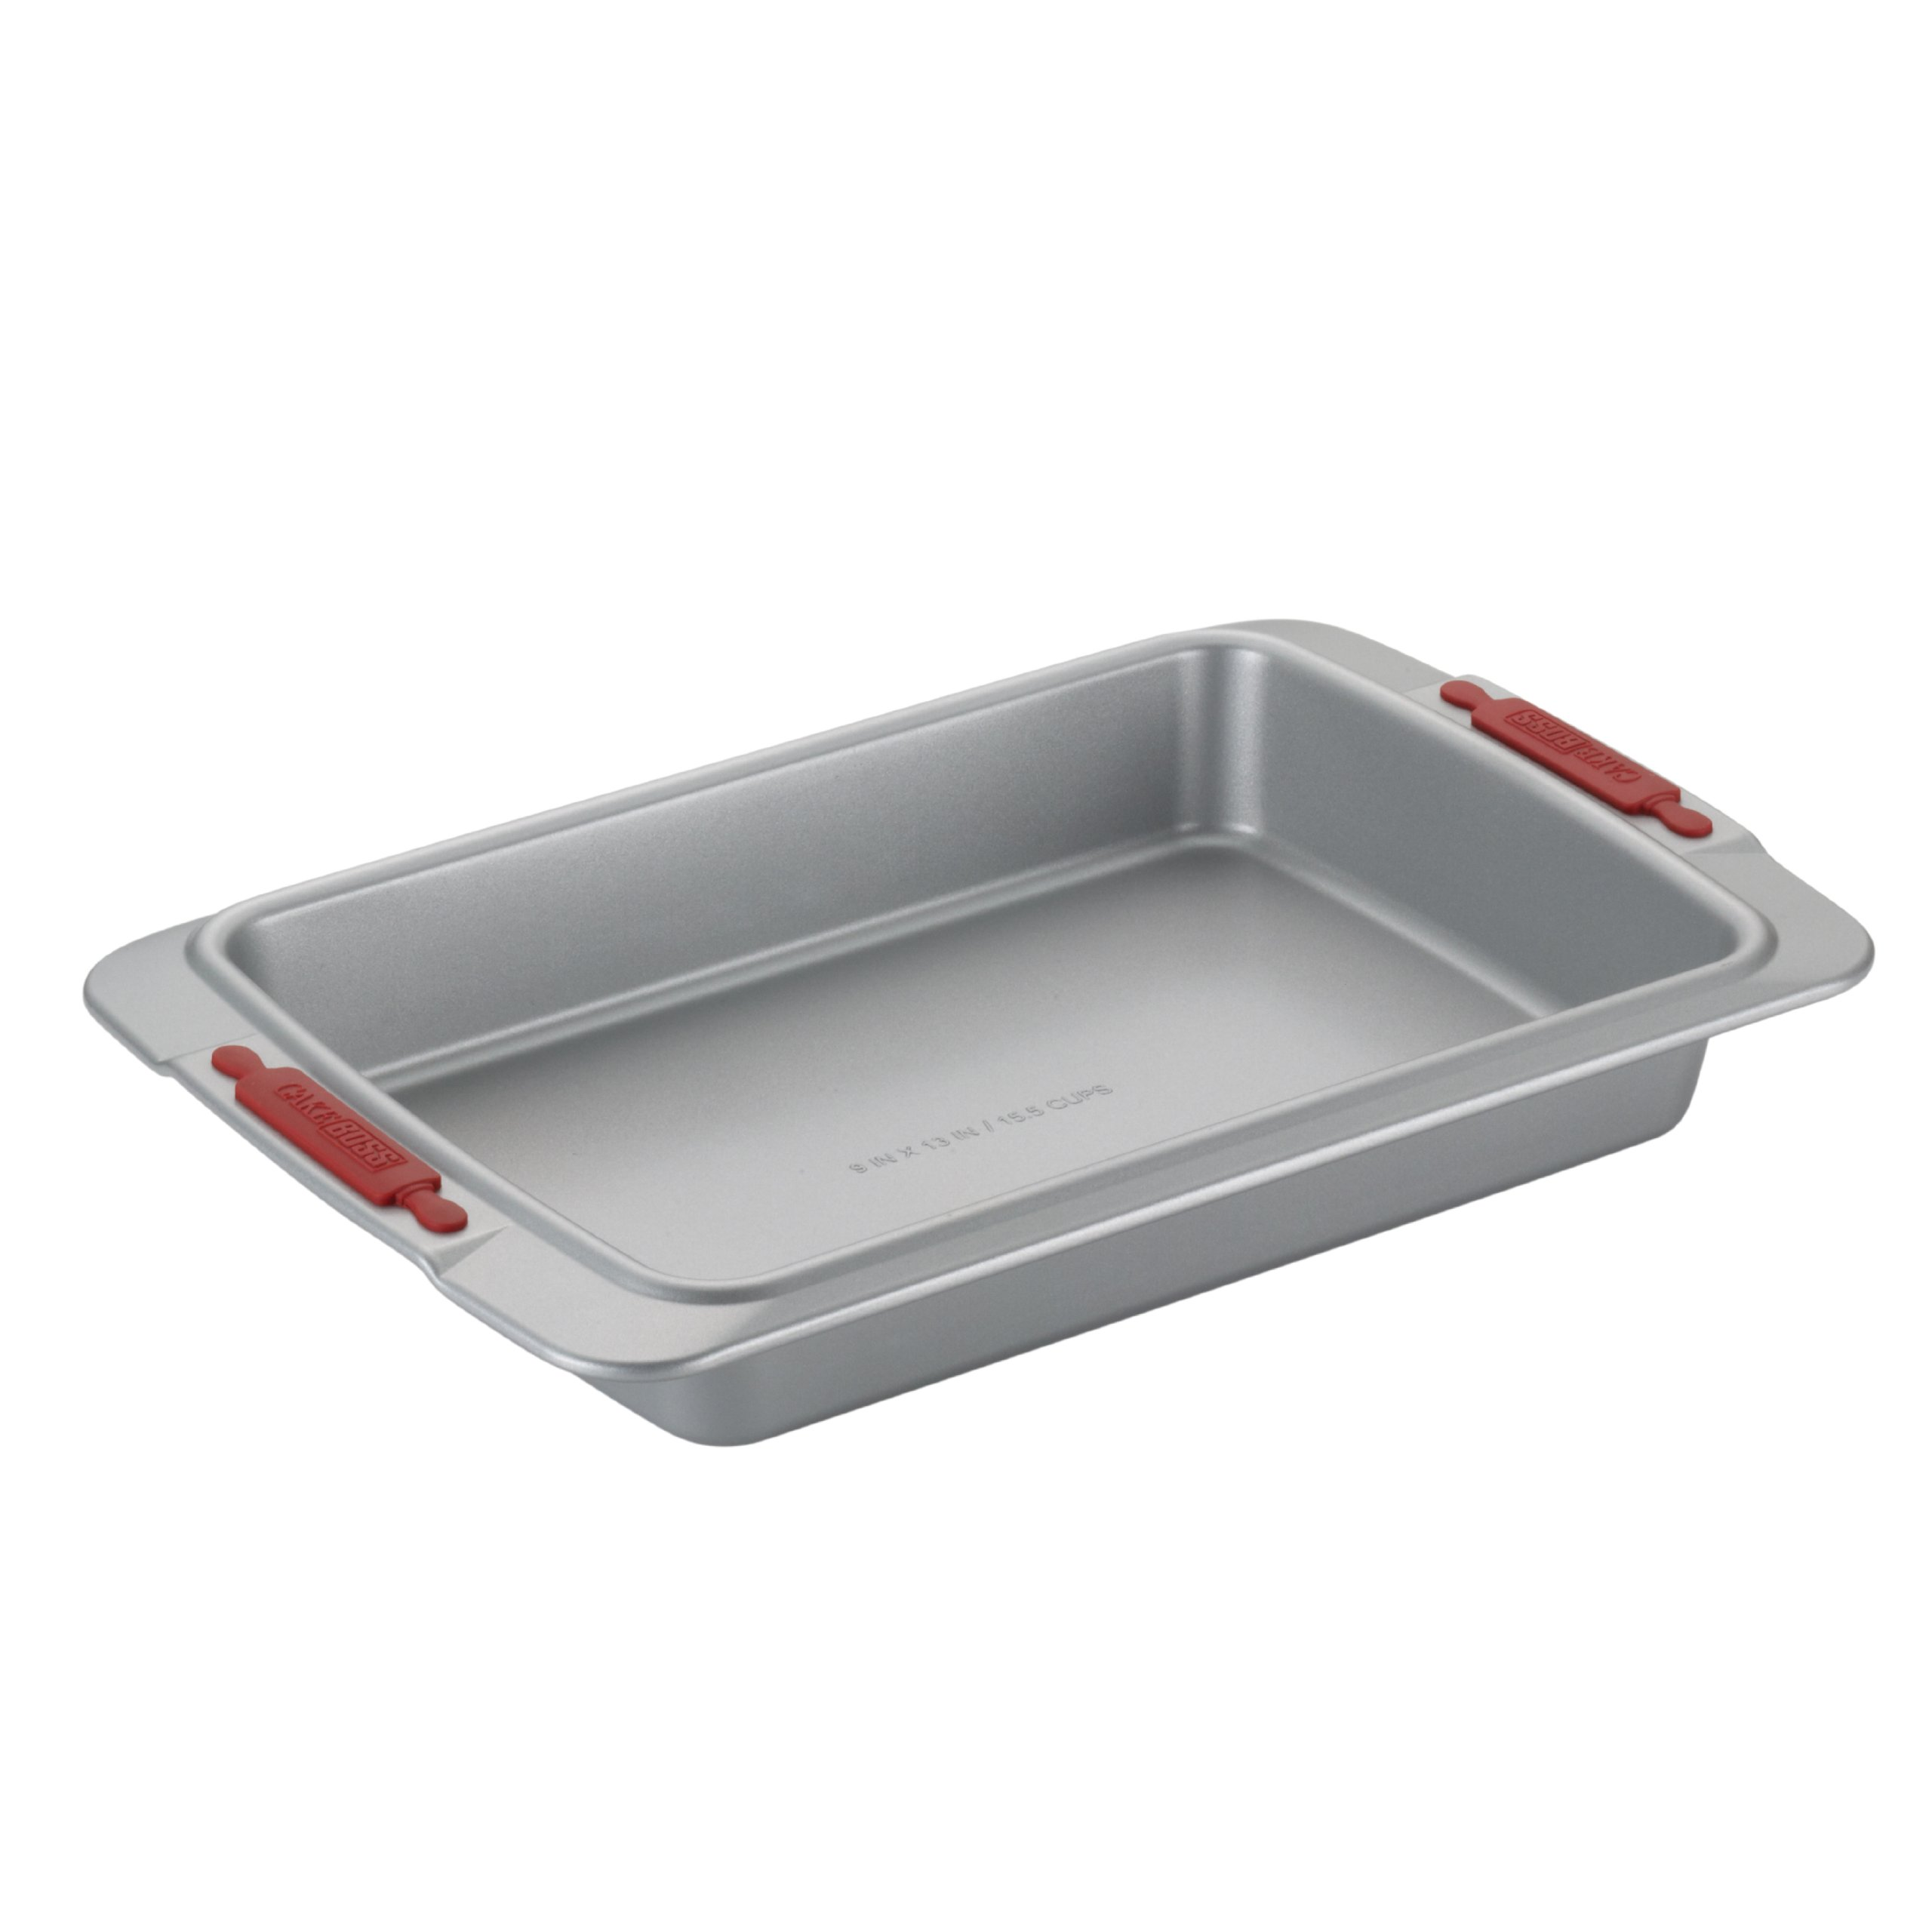 Cake Boss Deluxe Nonstick Bakeware 9-Inch by 13-Inch Cake Pan, Gray with Red Silicone Grips